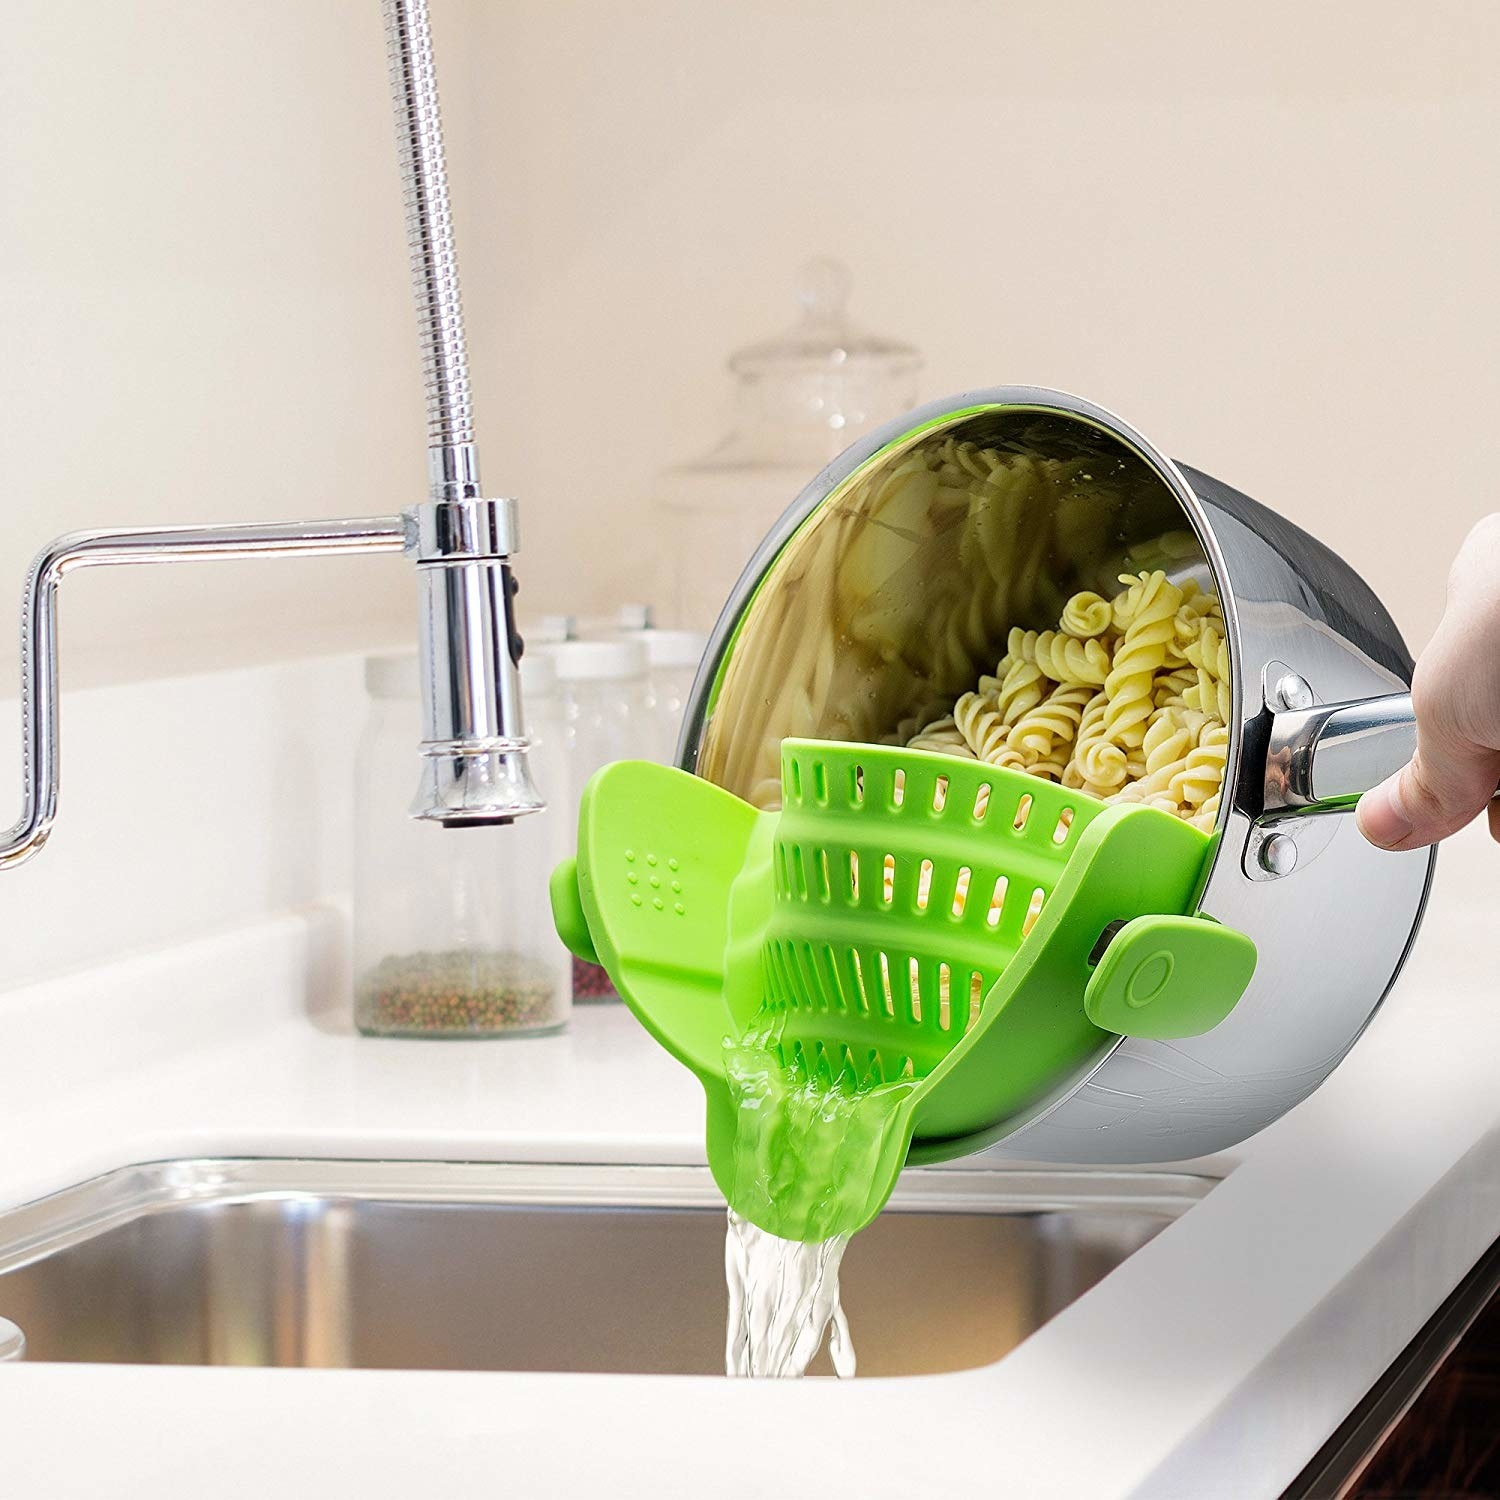 A model draining a pot of pasta with a green strainer clipped on the sides so they can drain it with one hand